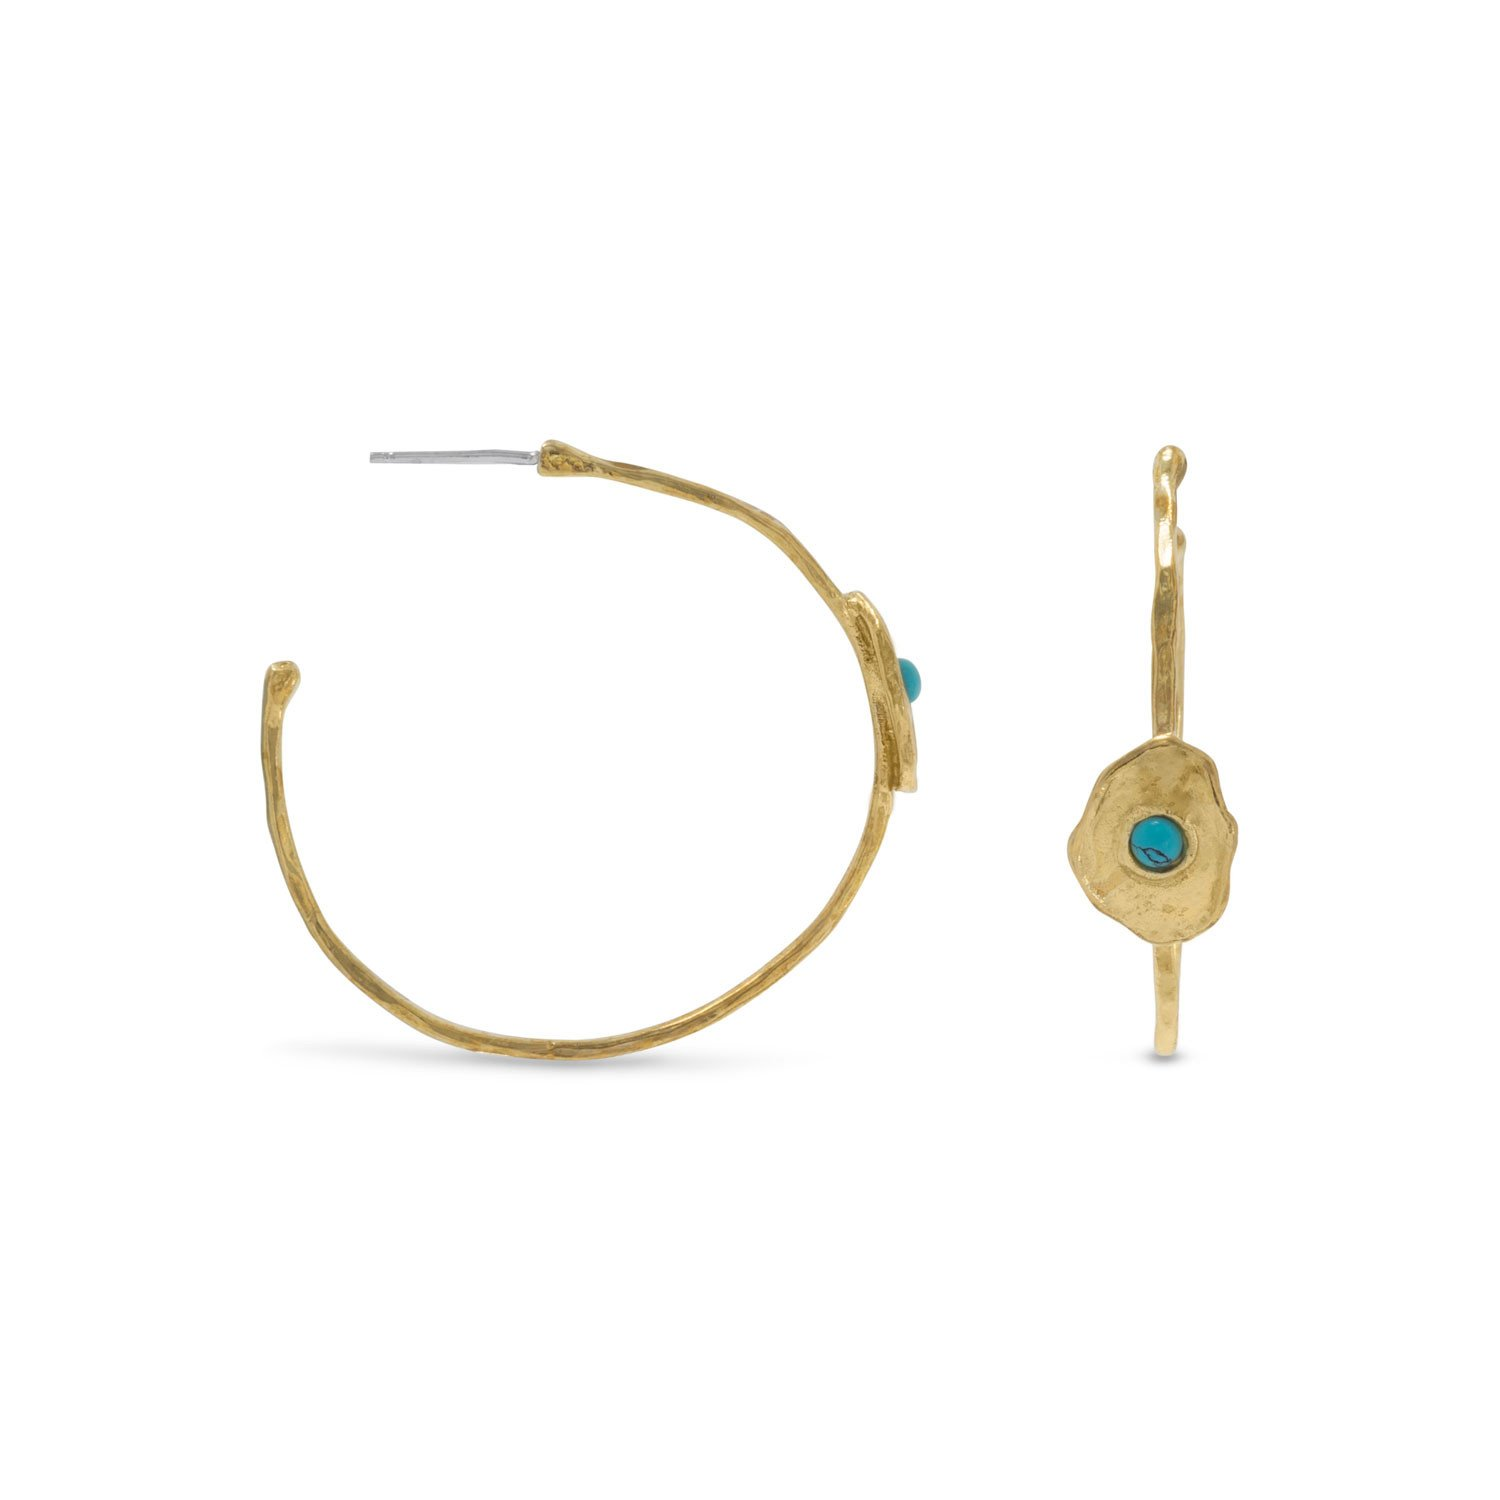 Brass and Reconstituted Turquoise Hoops